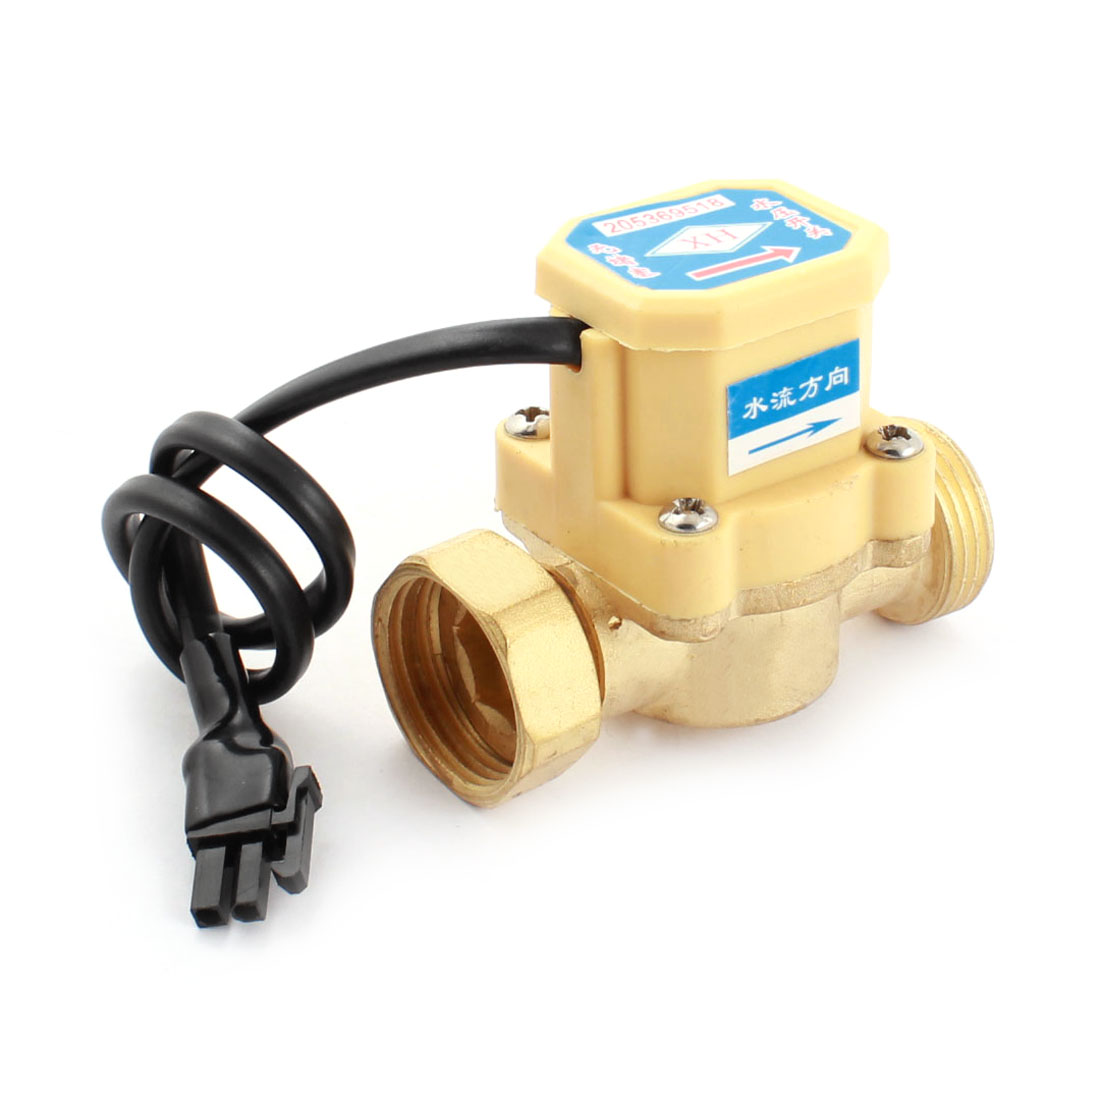 3/4PT Male/Female Thread 0.6Mpa 0.75-5L/min Water Fluid Flow Sensor Control Flowmeter Switch DC 5-18V 260W